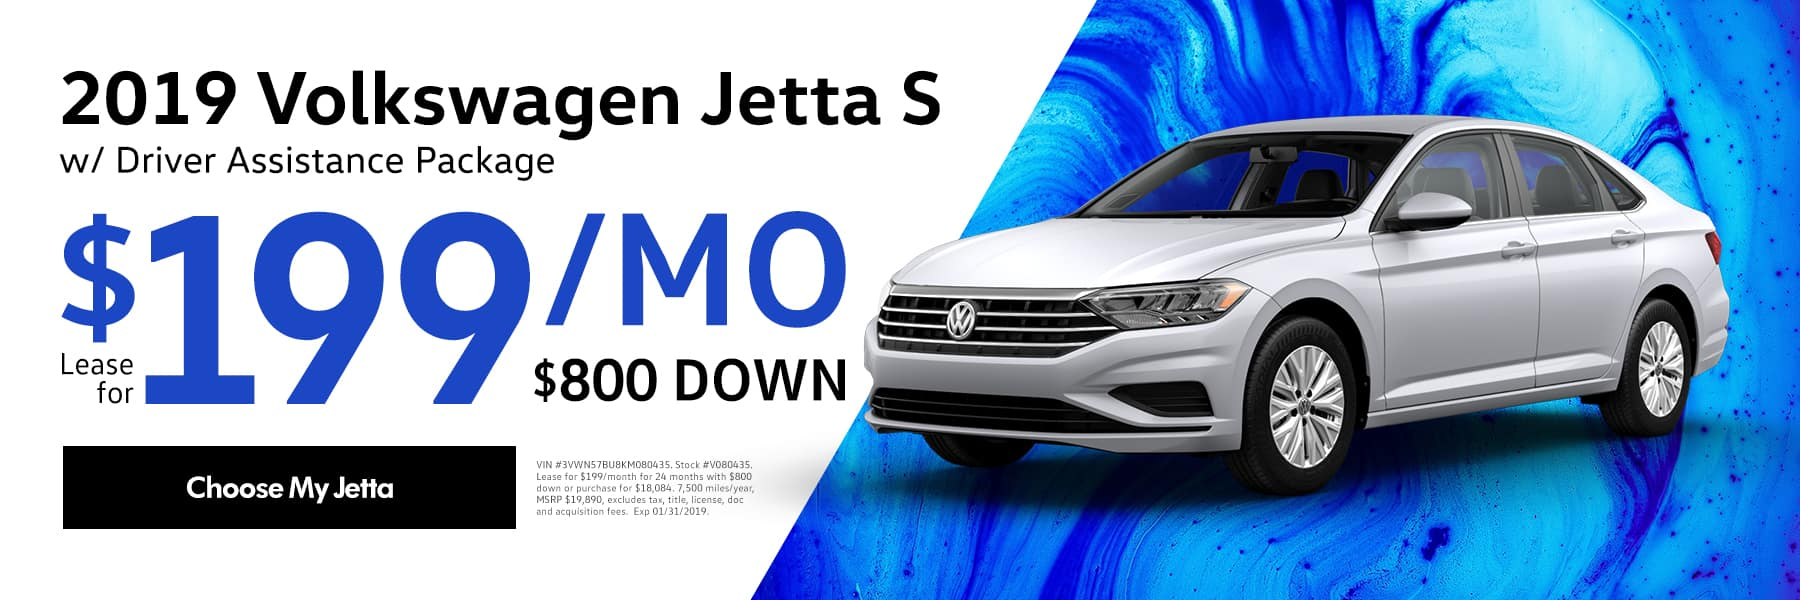 Lease the 2019 Volkswagen Jetta 1.4T S for $199/month for 48 months - Choose my Jetta